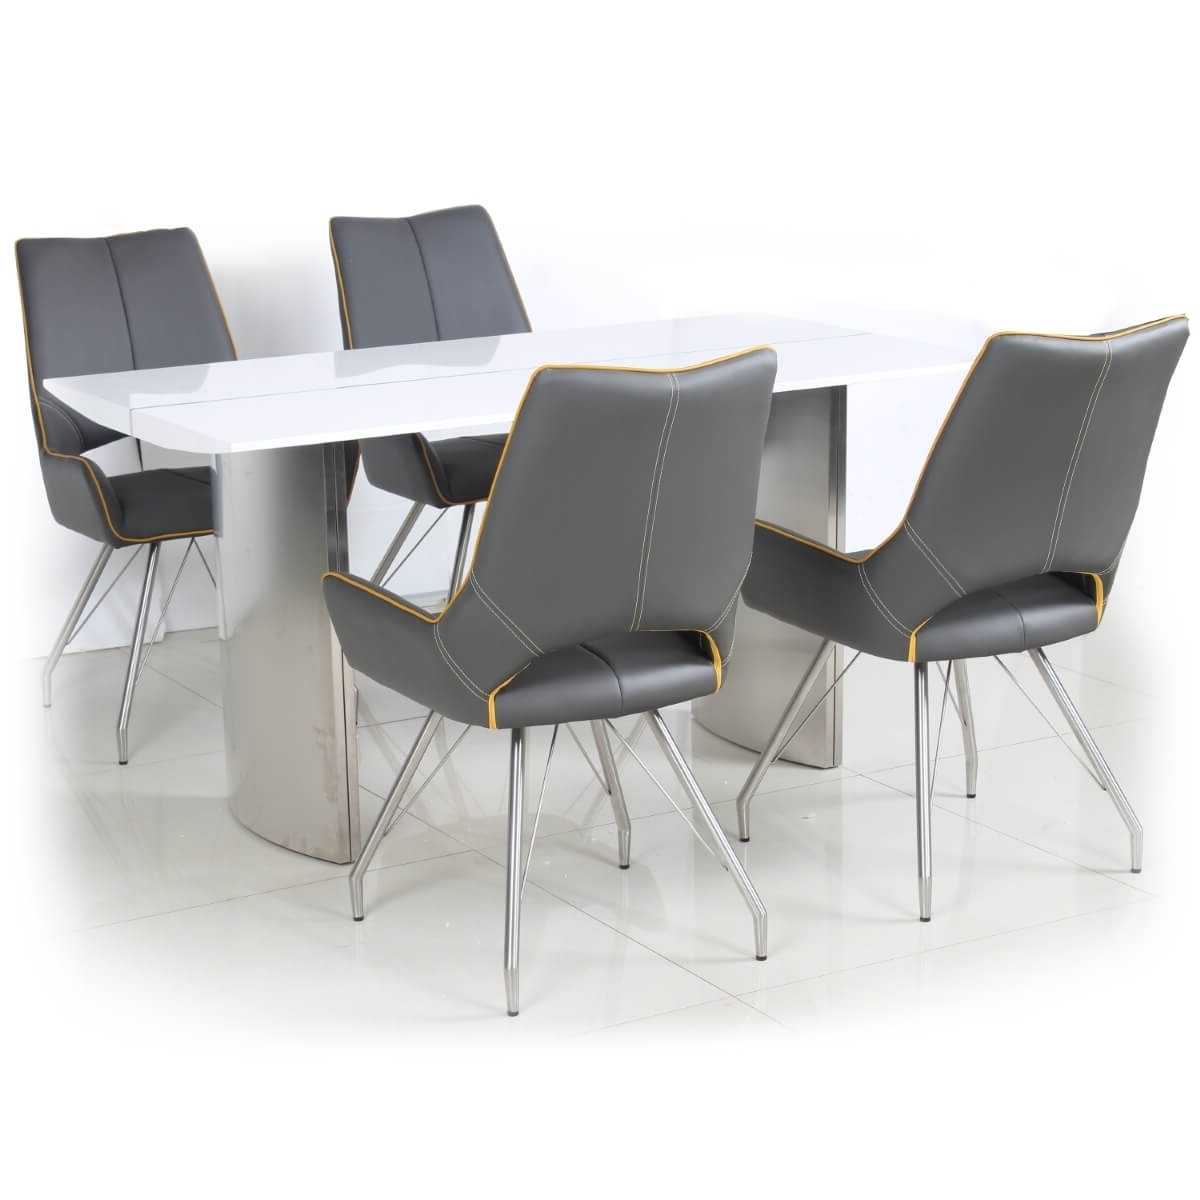 High Gloss White Dining Chairs Inside Popular Dining Set – White High Gloss Dining Table And 4 Grey Dining Chairs (Gallery 23 of 25)